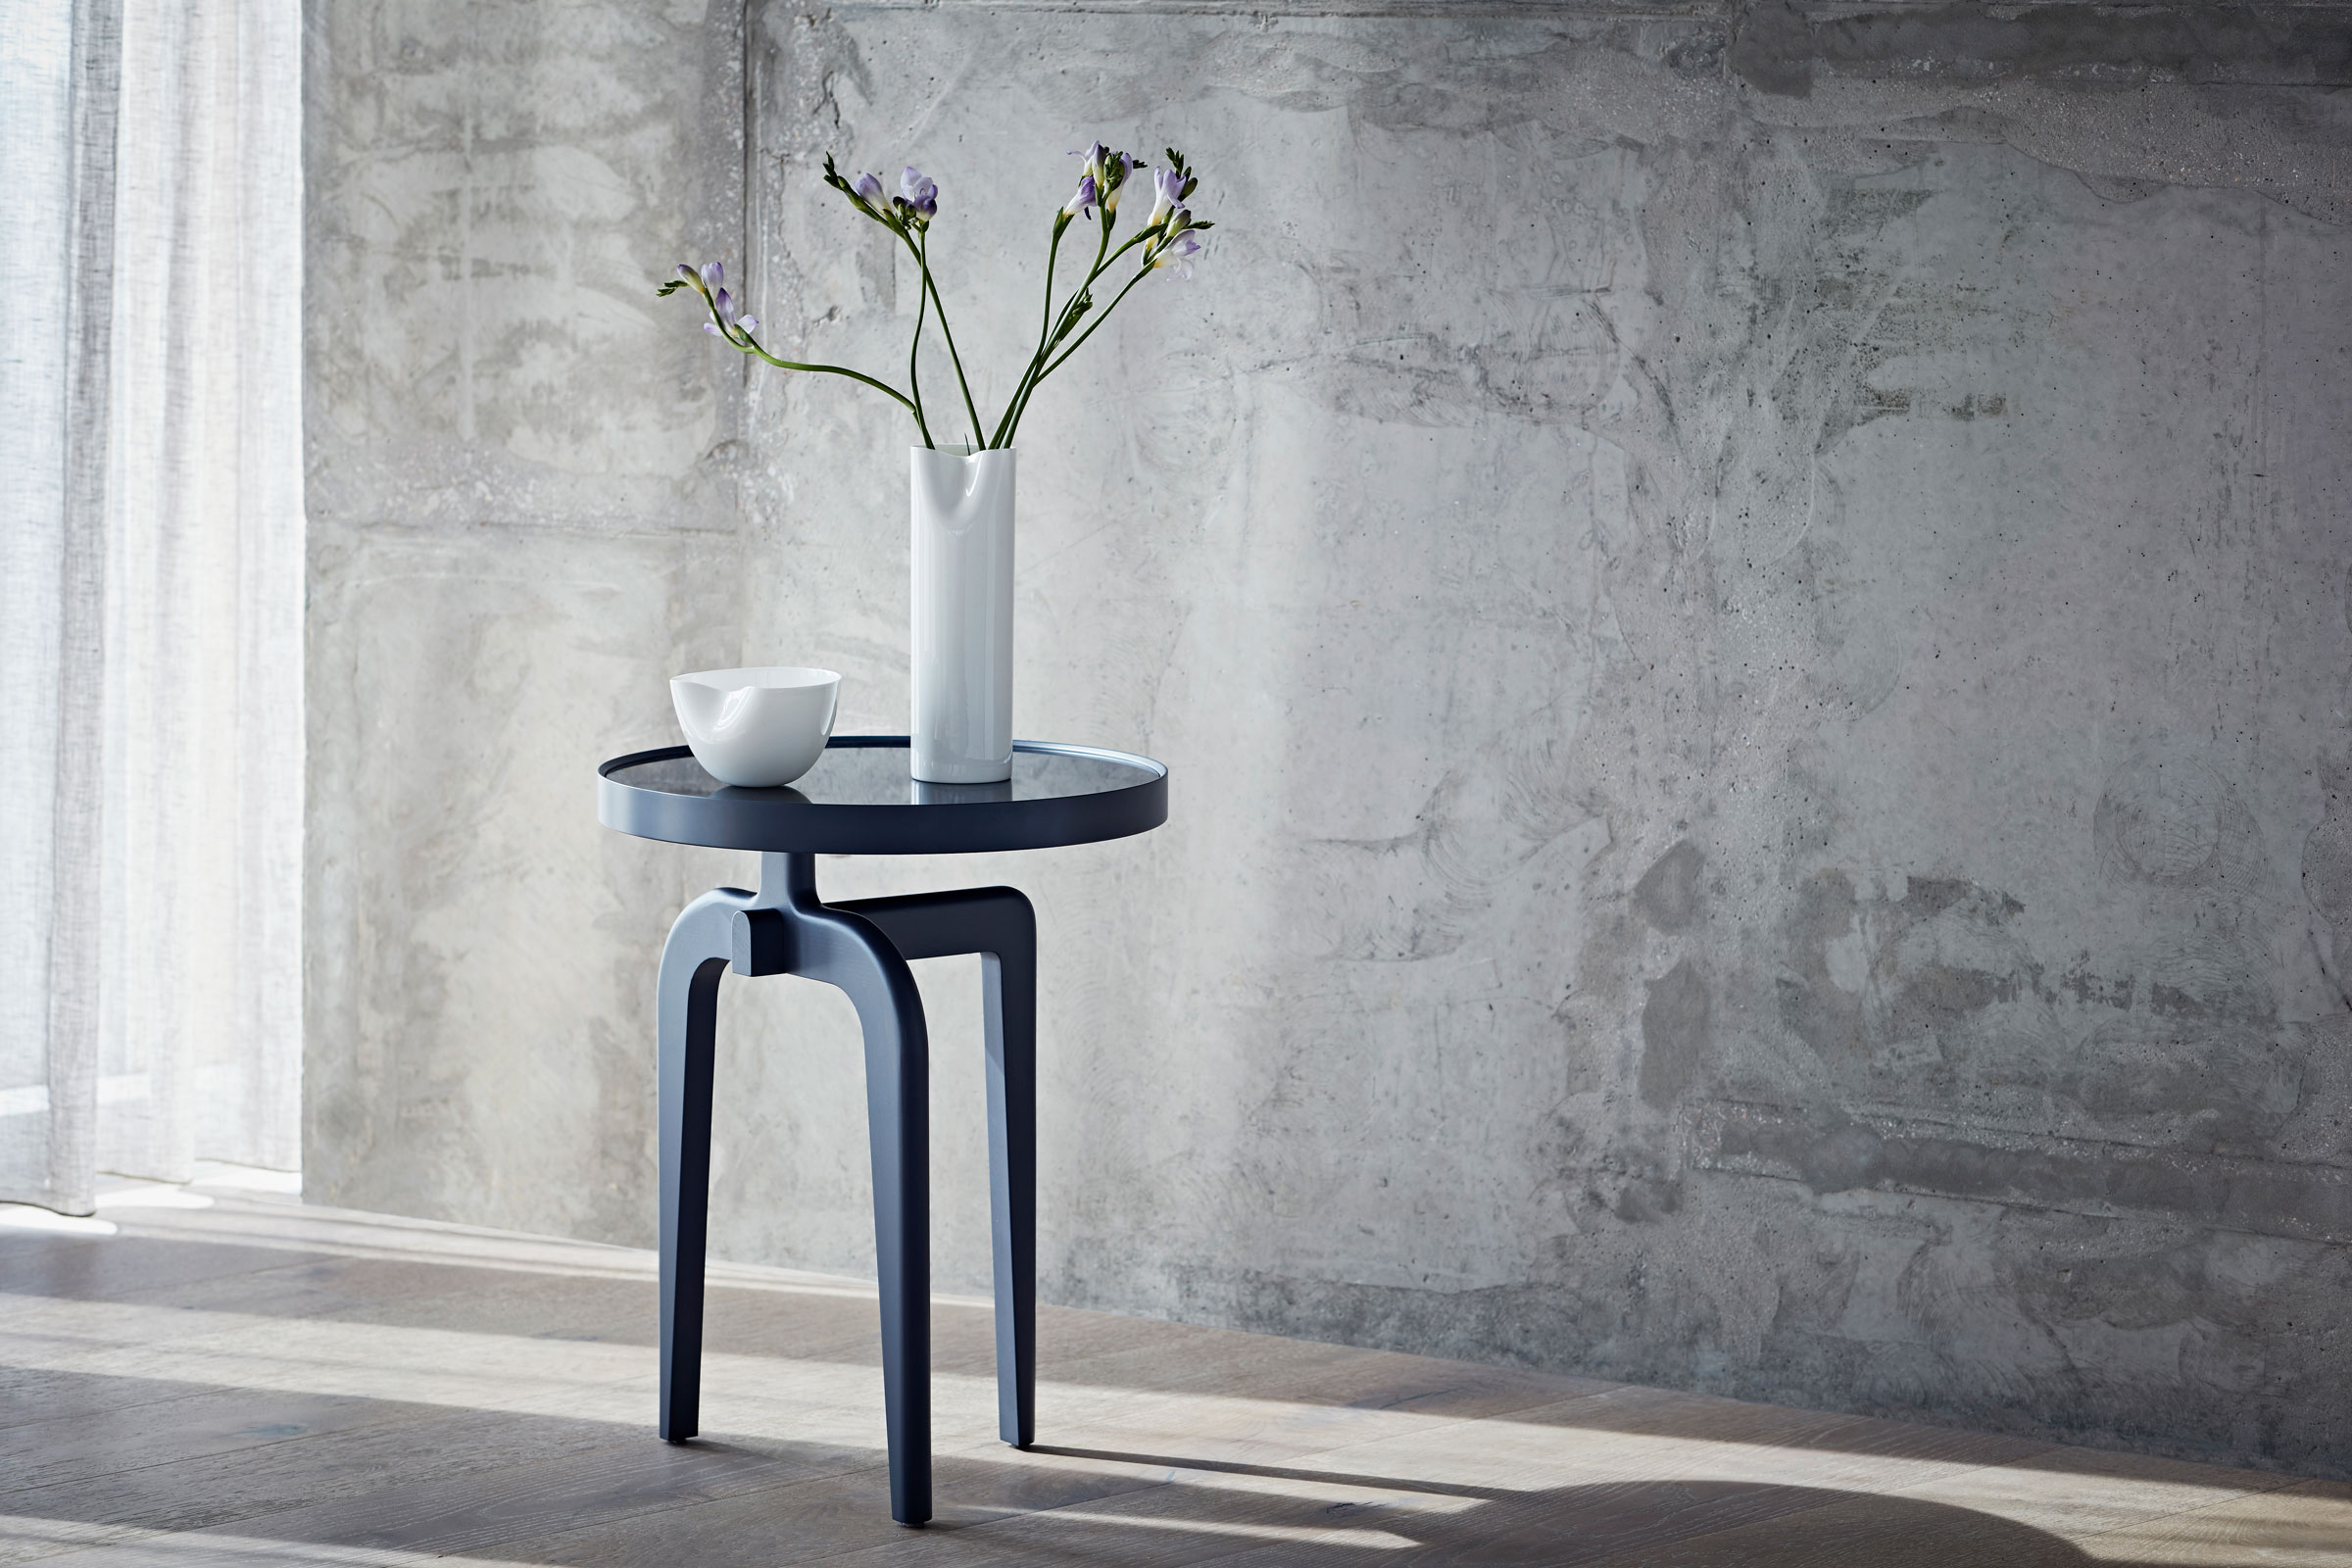 Ant Side Table Design by Bodo Sperlein Photographed by Jon Day